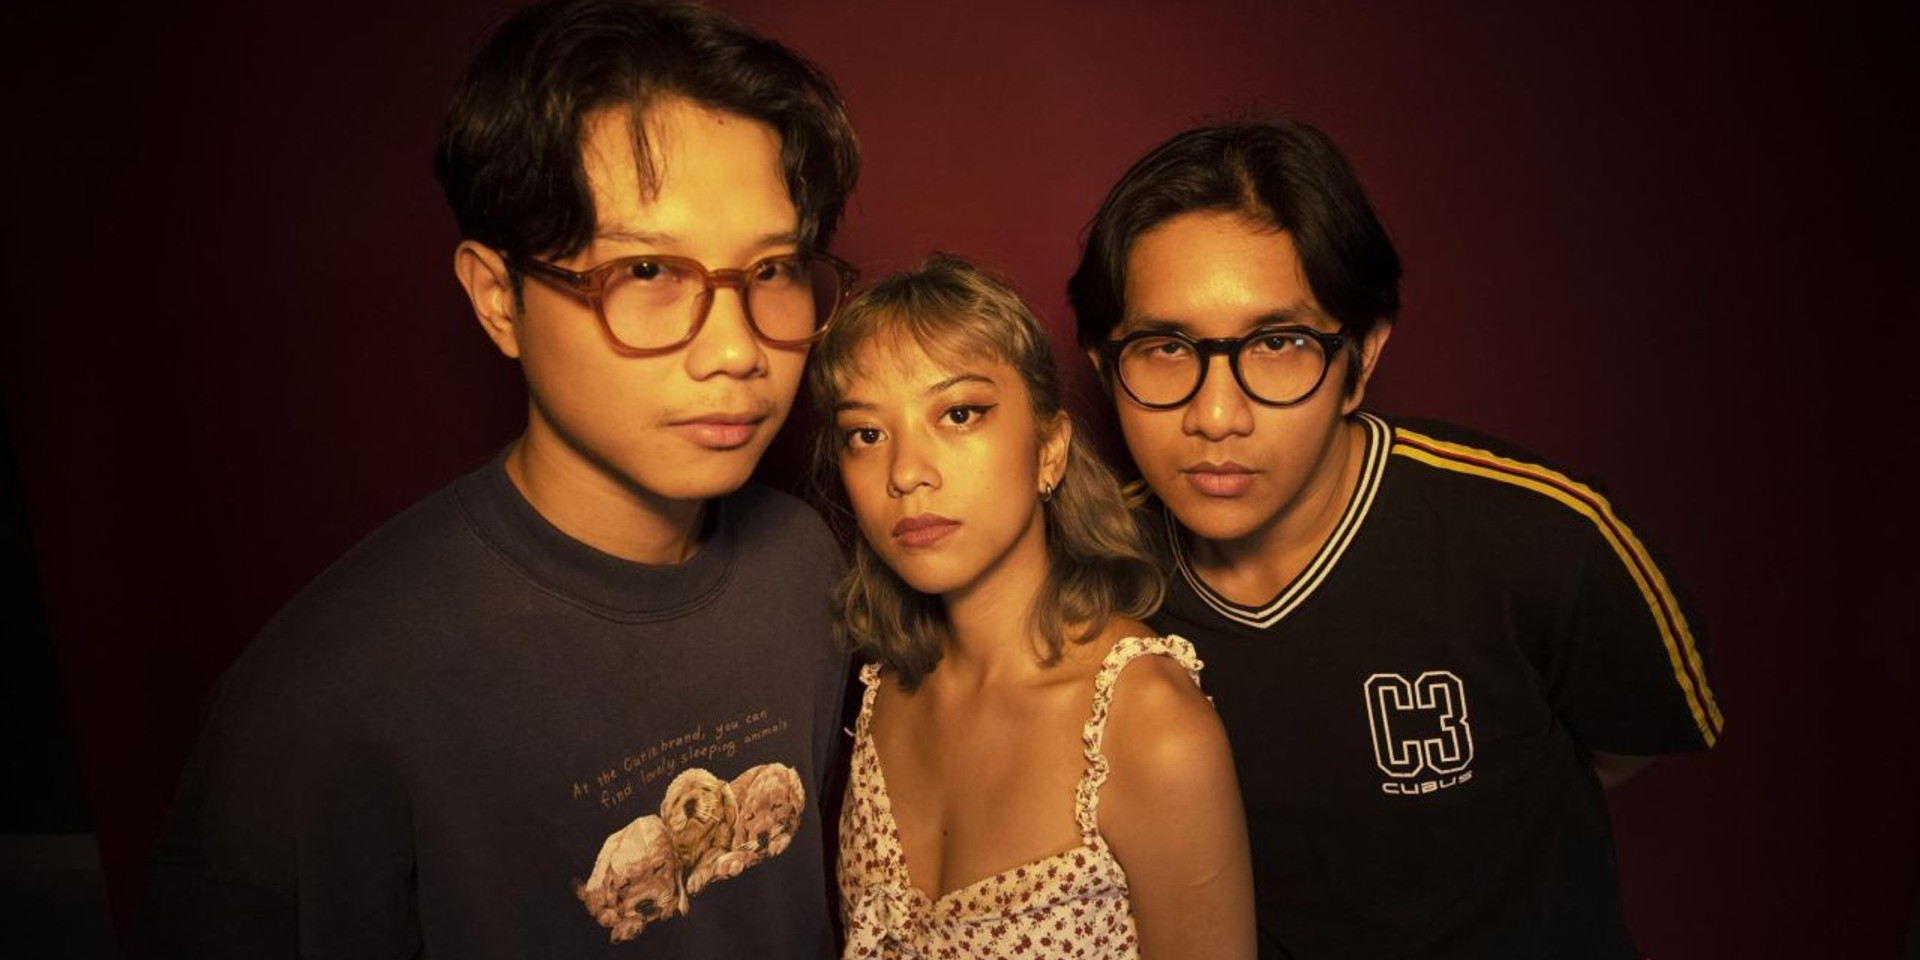 Asia Spotlight: Indonesian trio Grrrl Gang on documenting the highs and lows of youth in their music